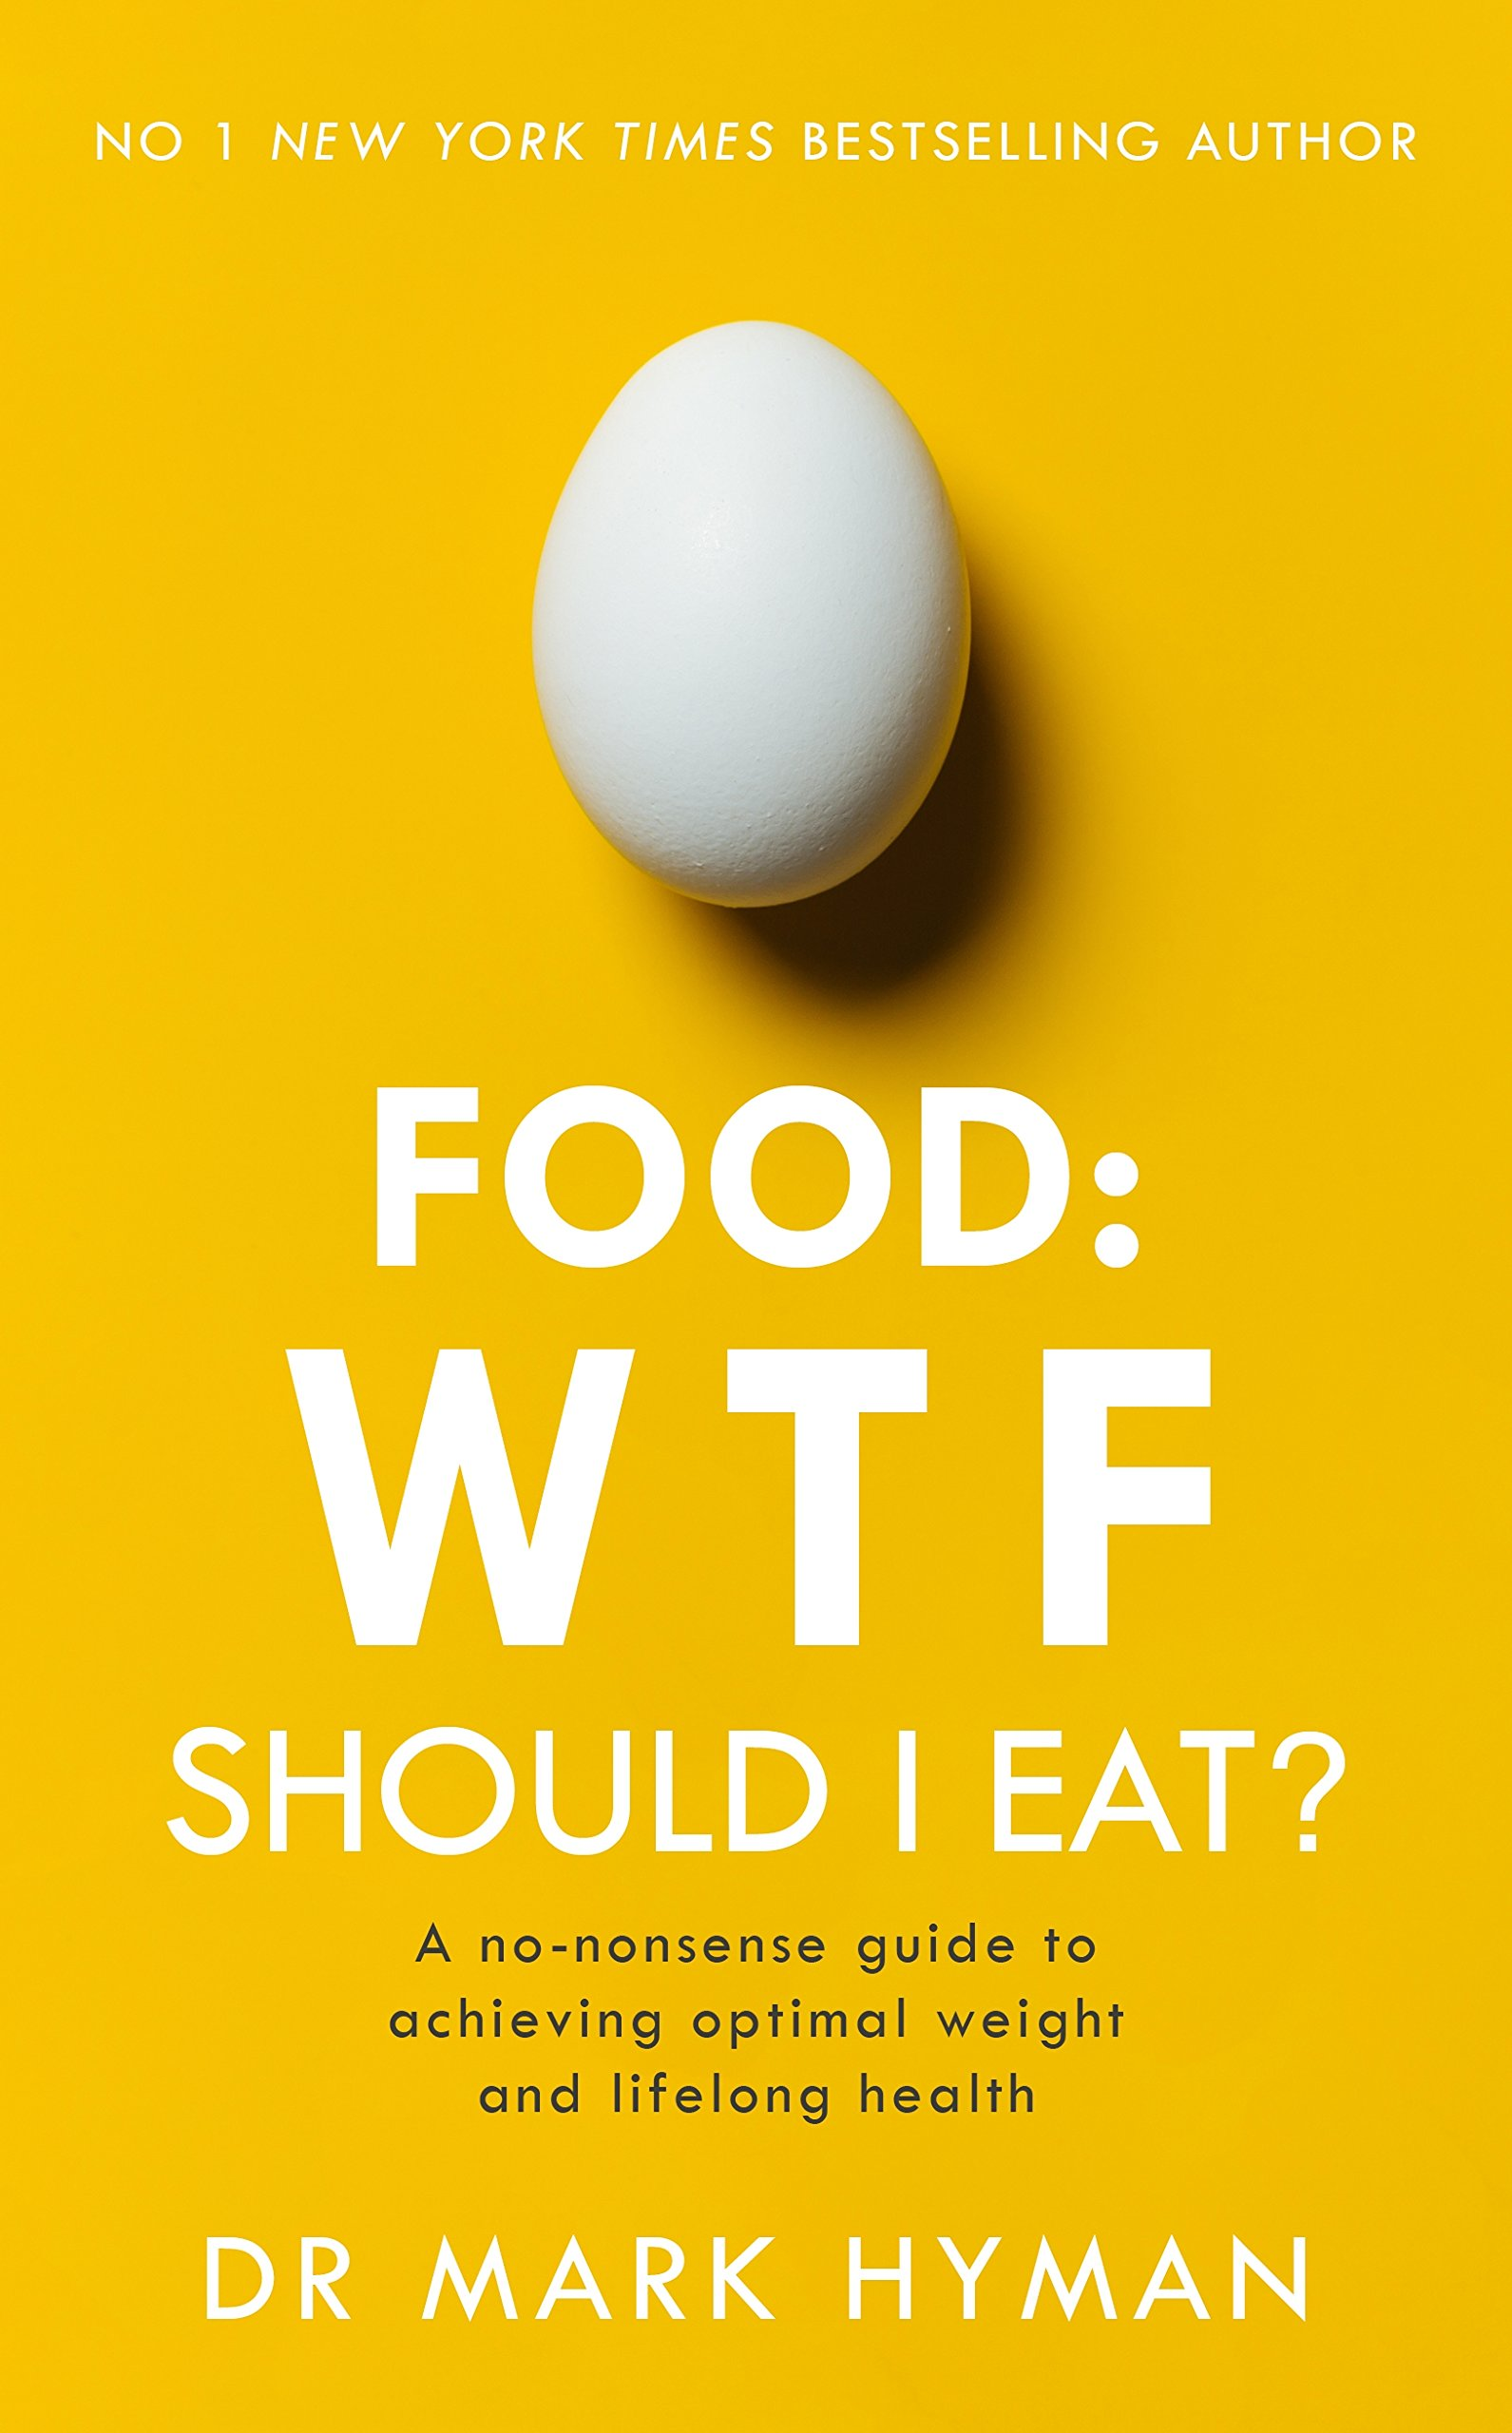 Food WTF Should I Eat The no nonsense guide to achieving optimal